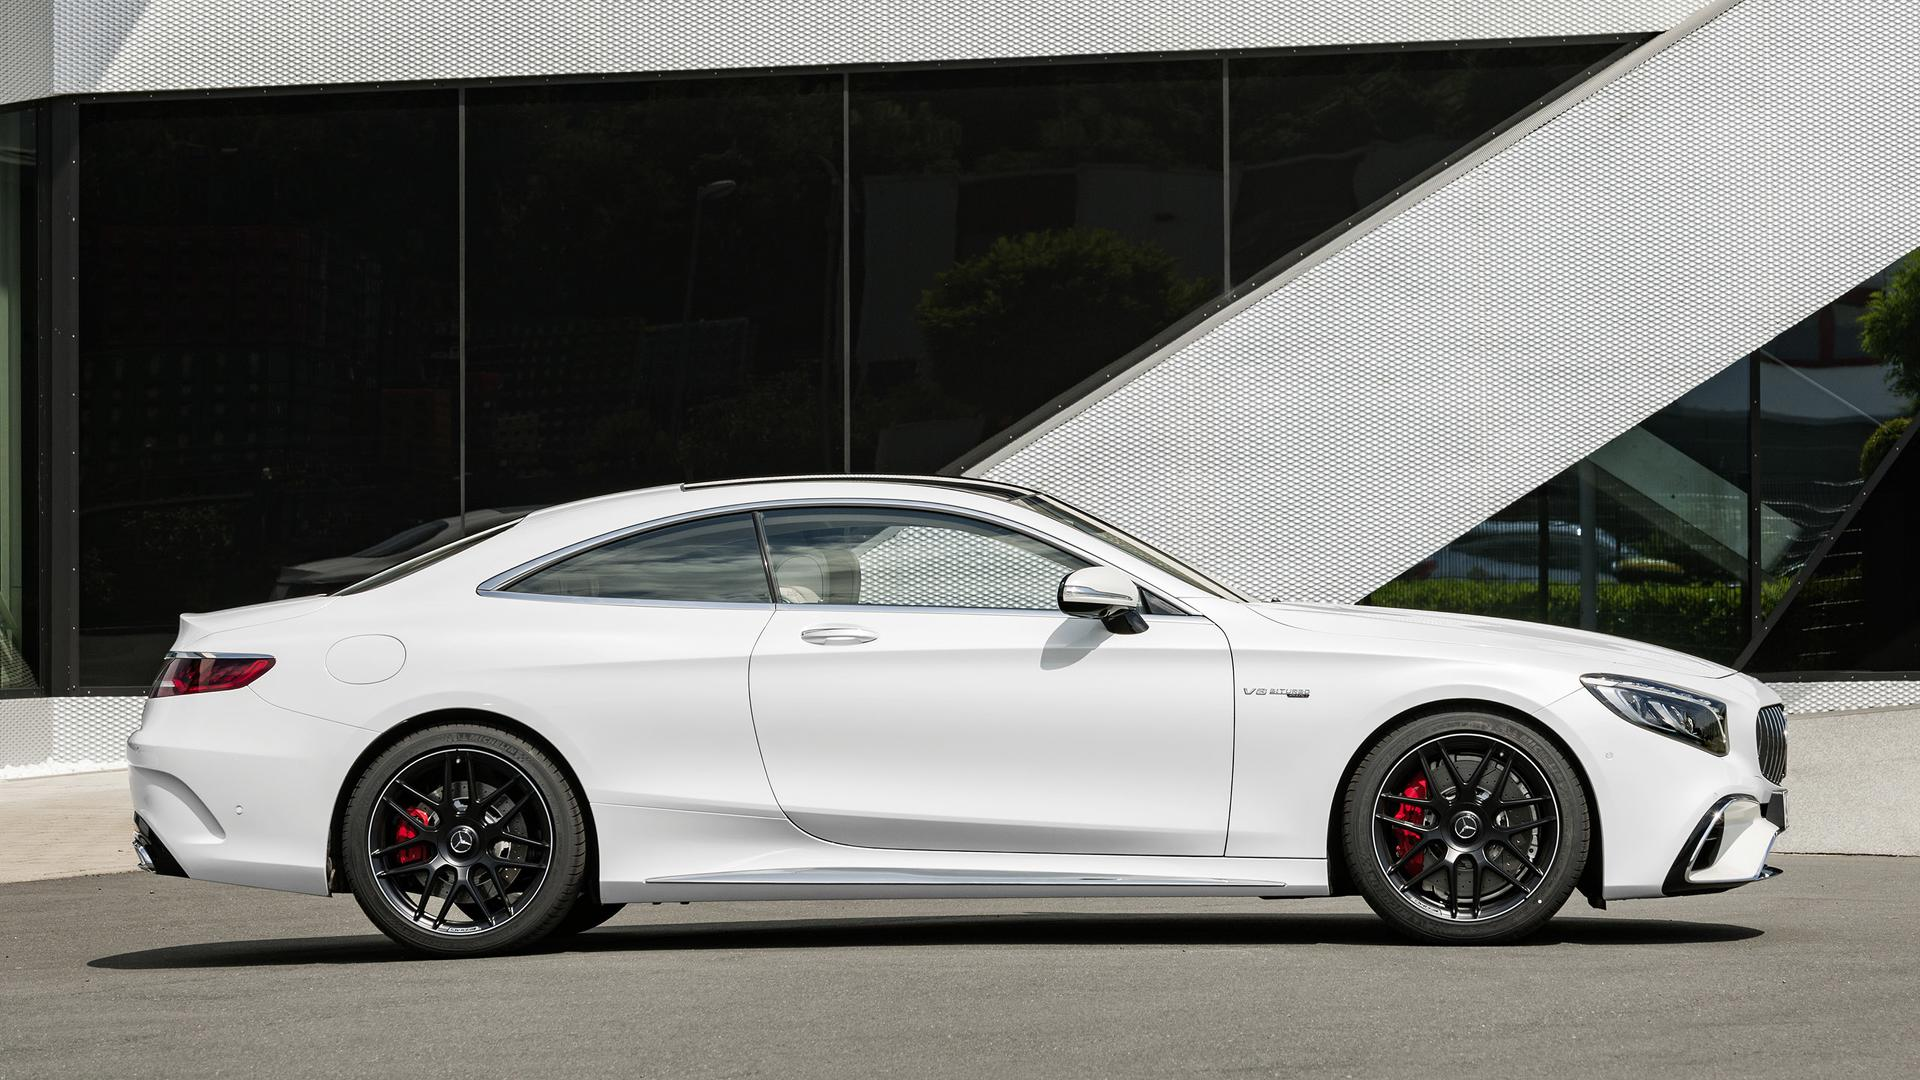 https://icdn-8.motor1.com/images/mgl/ALmg2/s1/2018-mercedes-amg-s63-coupe.jpg